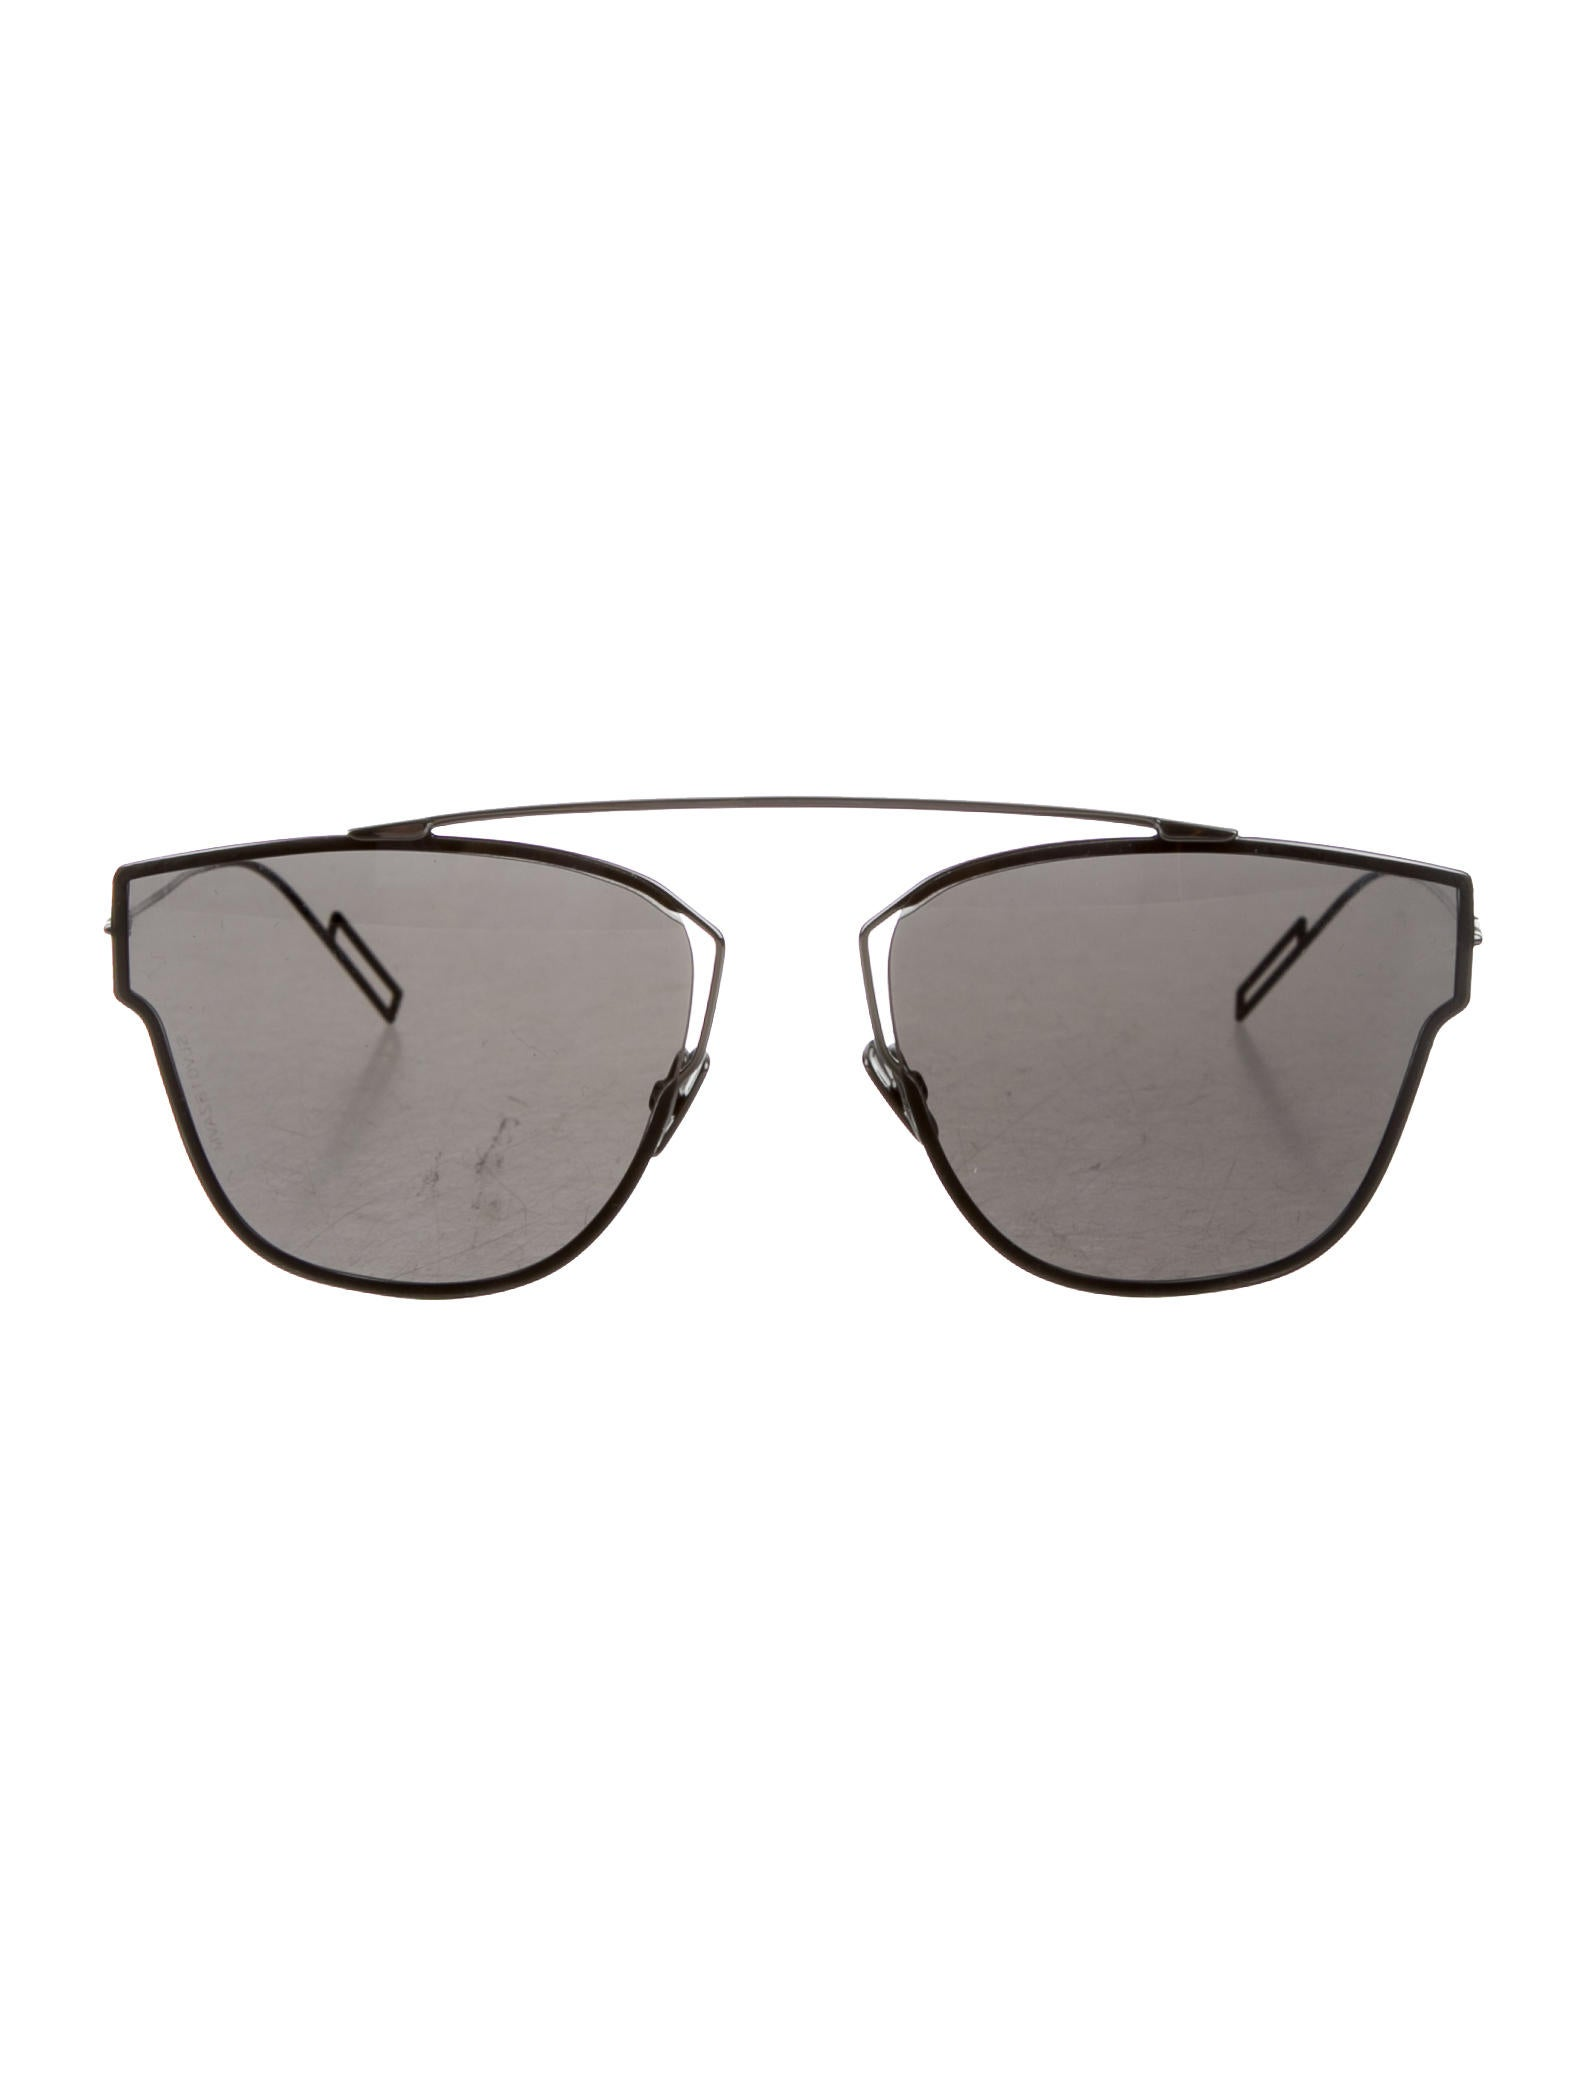 85aeab4087187 Dior Homme Dior 204s Aviator Sunglasses - Accessories - HMM23073 ...